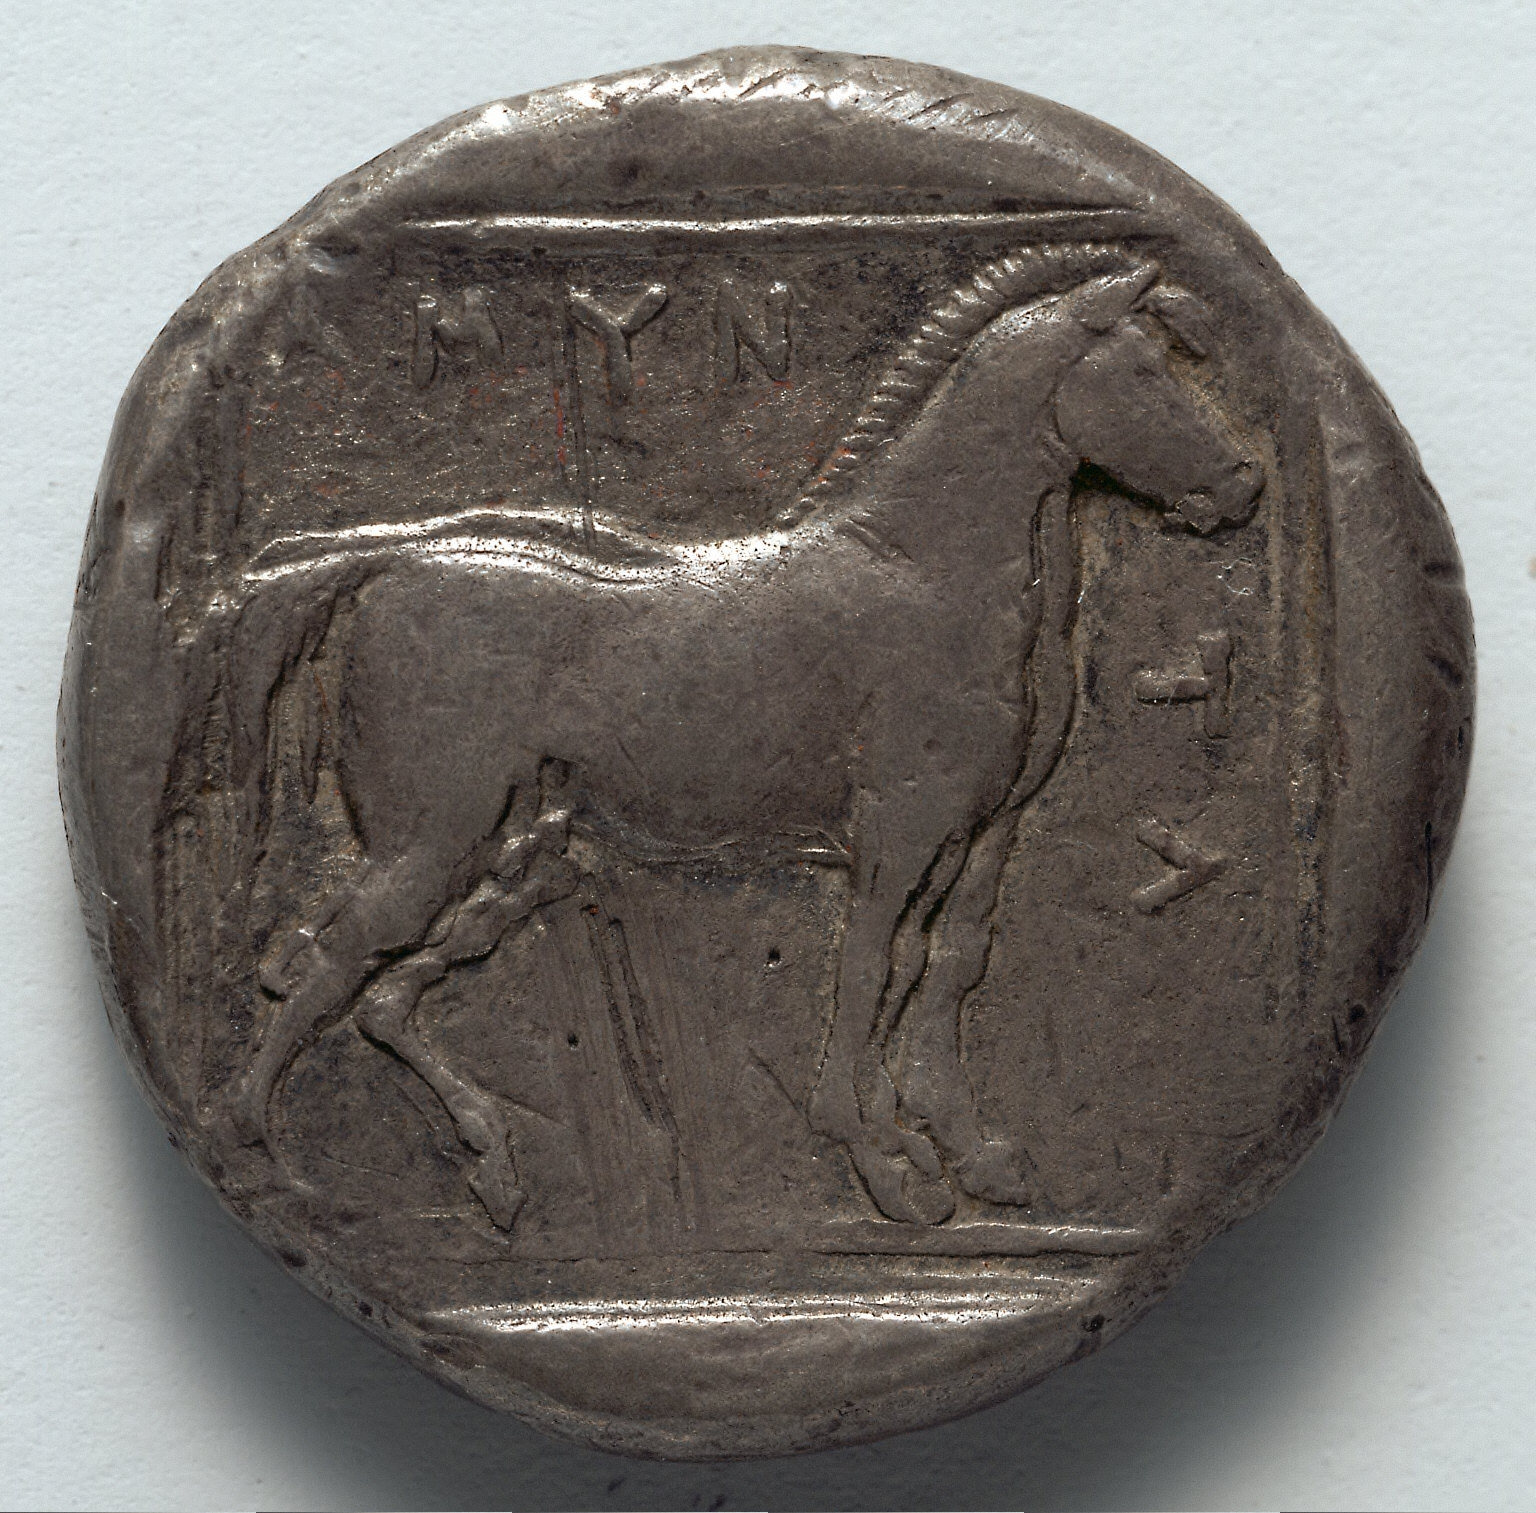 Stater: Free Horse (reverse)